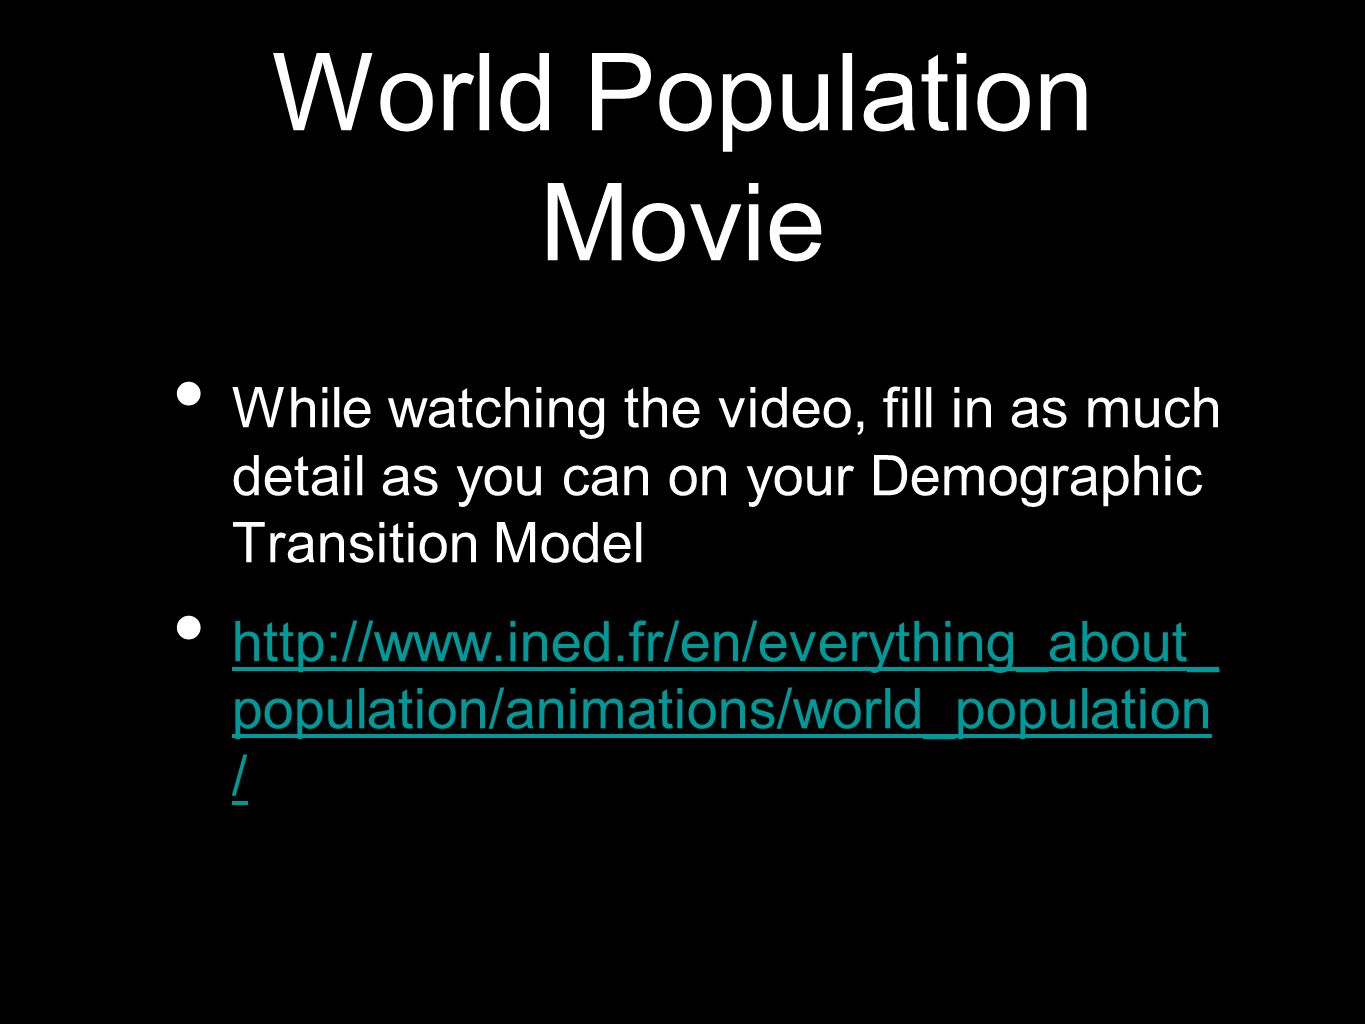 World Population Movie While watching the video, fill in as much detail as you can on your Demographic Transition Model http://www.ined.fr/en/everythi